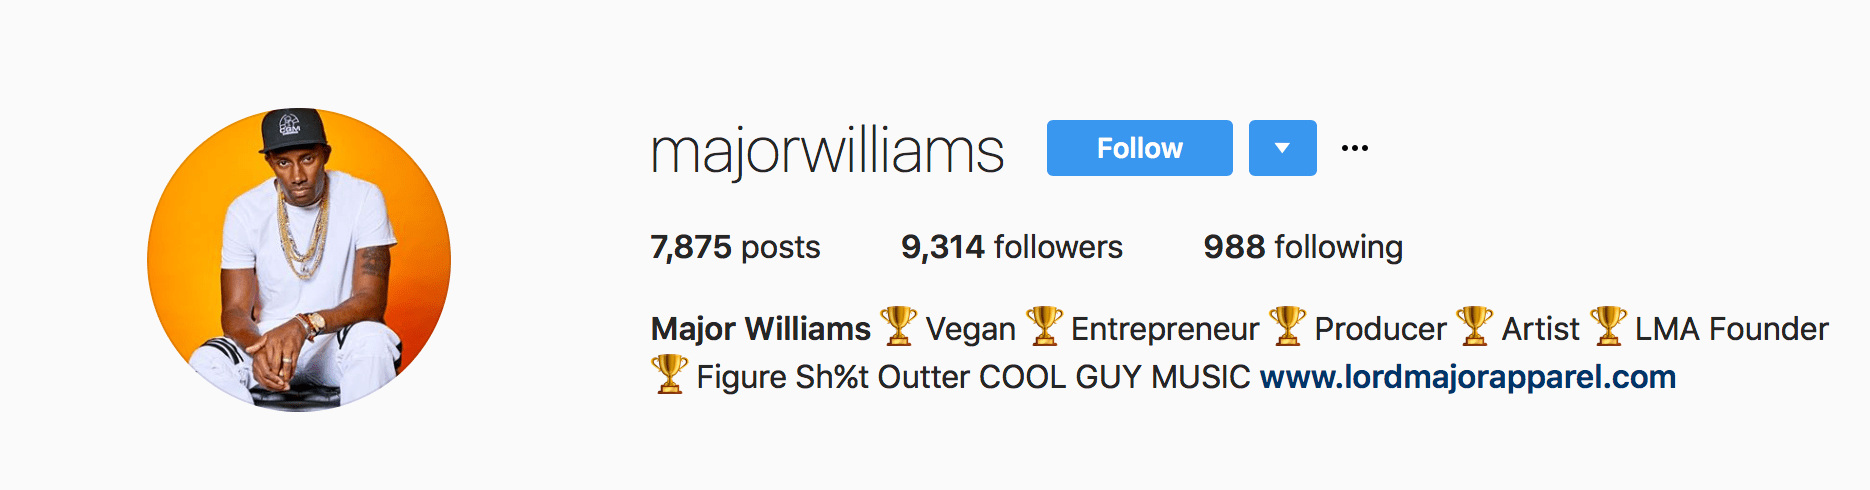 Major Williams Instagram